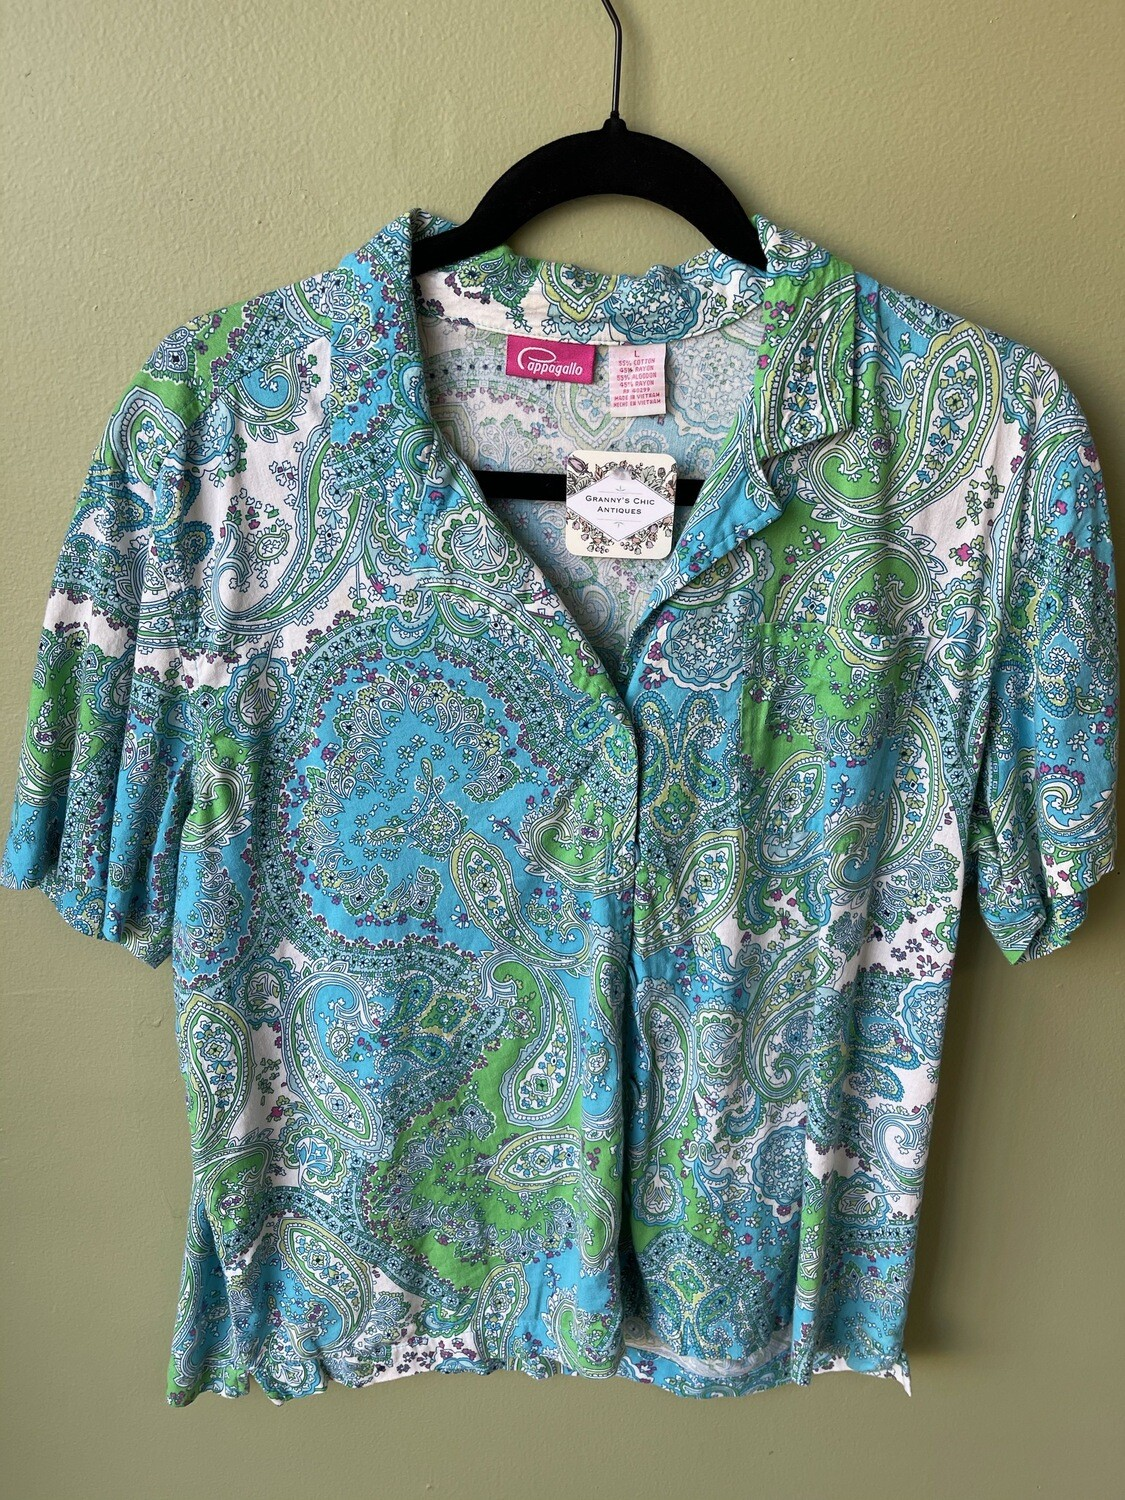 Pappagallo Green and Turquoise Paisley Camp Shirt, L